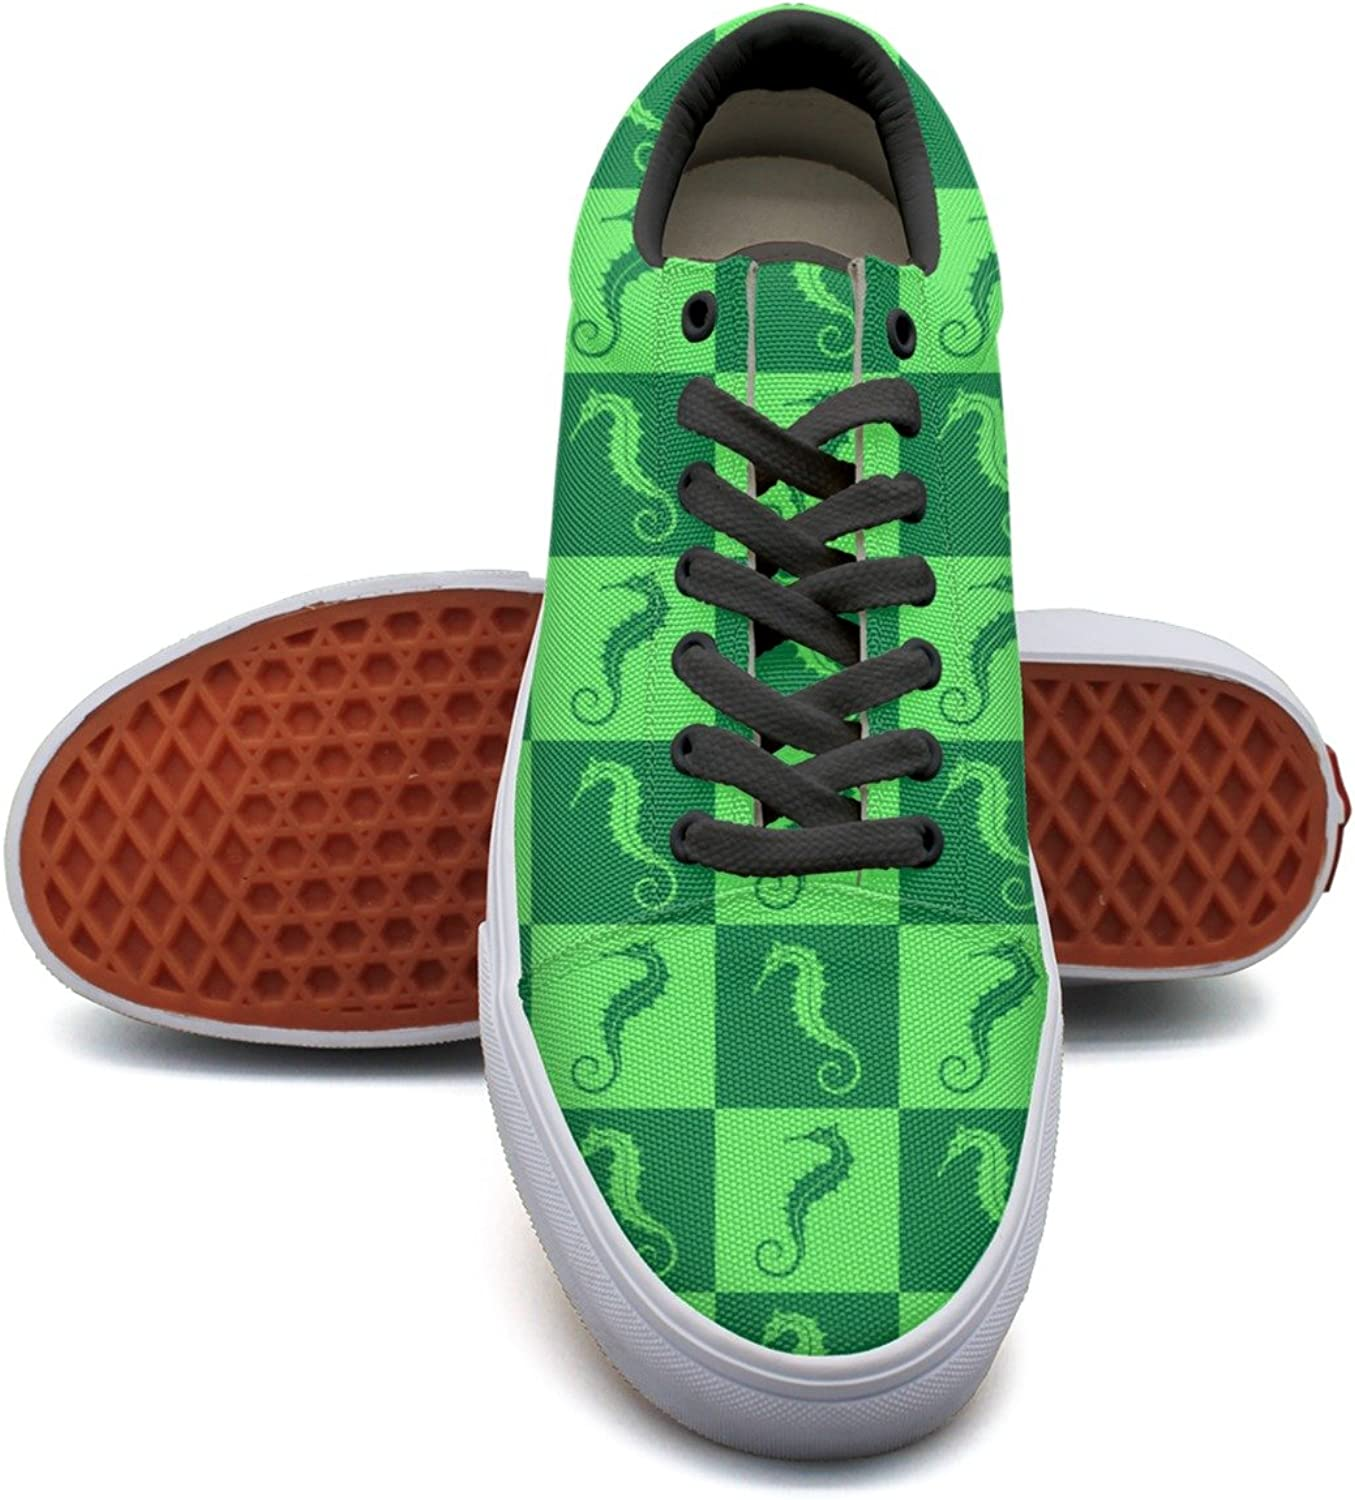 Green Seahorse Case Womens' Casual Sneakers shoes Canvas Cool New Original